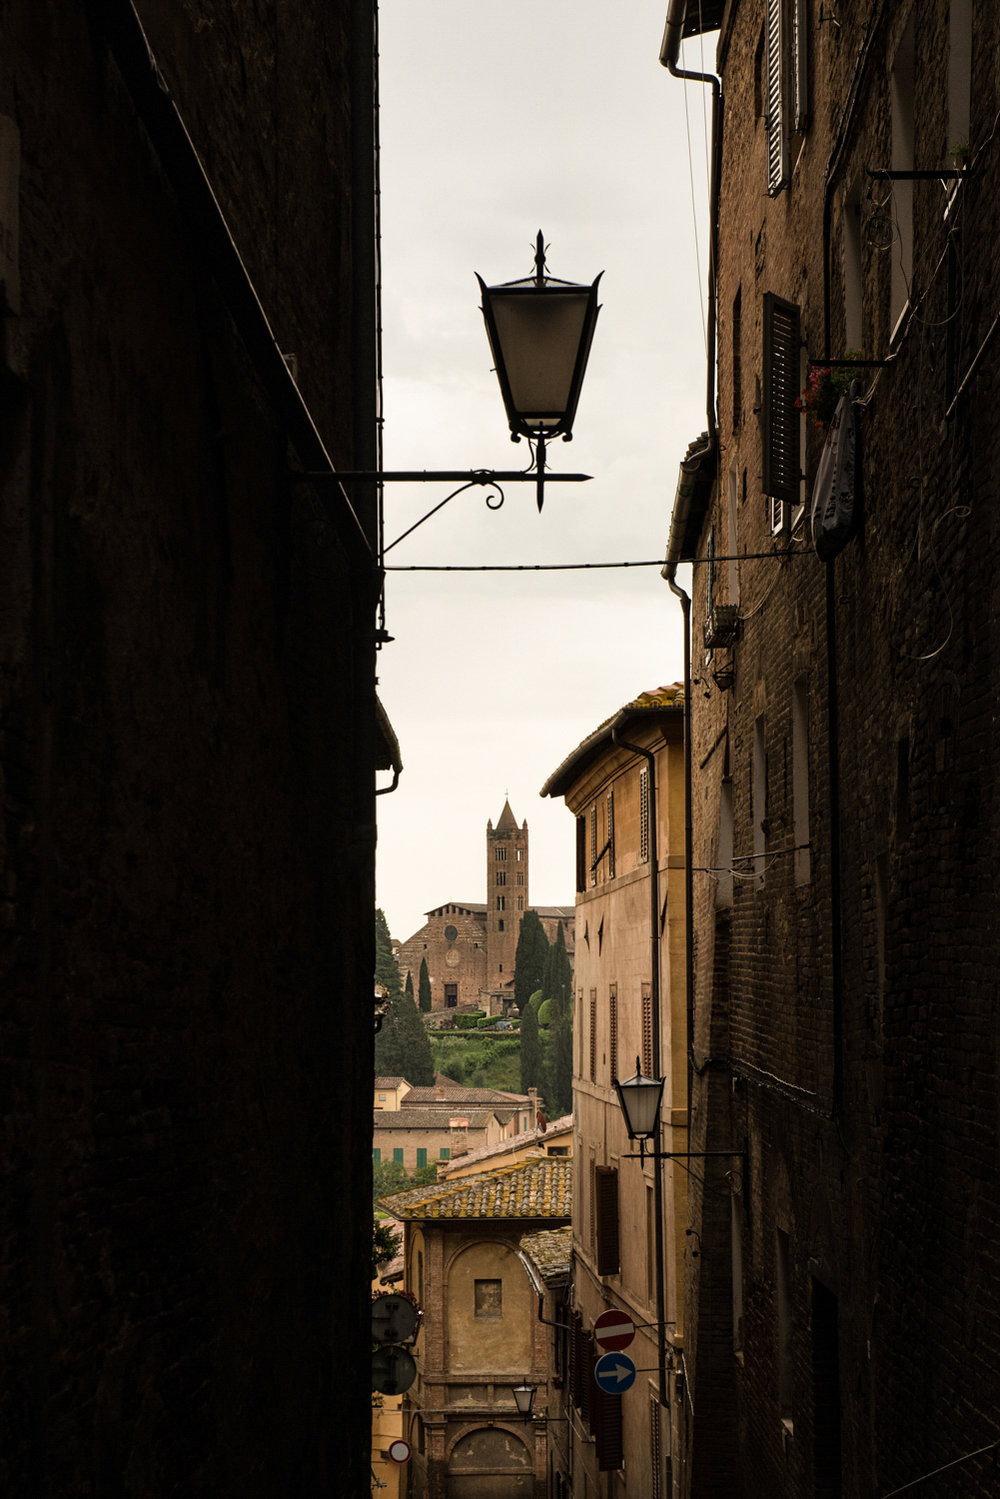 Alley in Siena  PHOTO: ANNA VOLPI • NIKON D750 • 24-70mm Ƒ/2.8 @ 70mm • Ƒ/11 • 1/200 • ISO 800